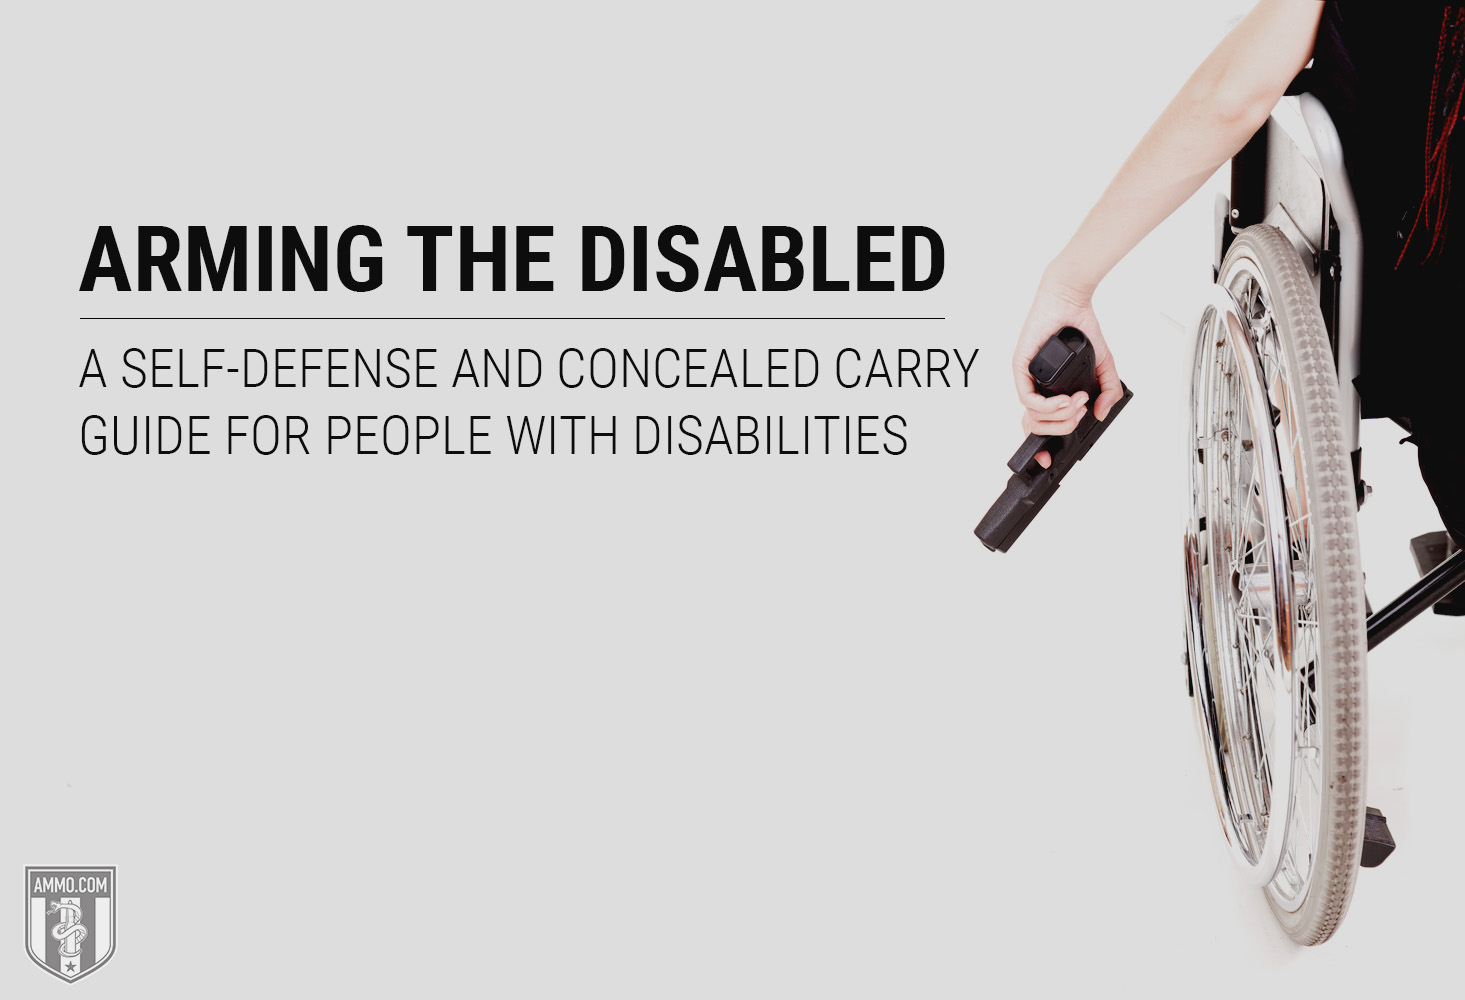 Arming the Disabled: A Self-Defense and Concealed Carry Guide for People With Disabilities